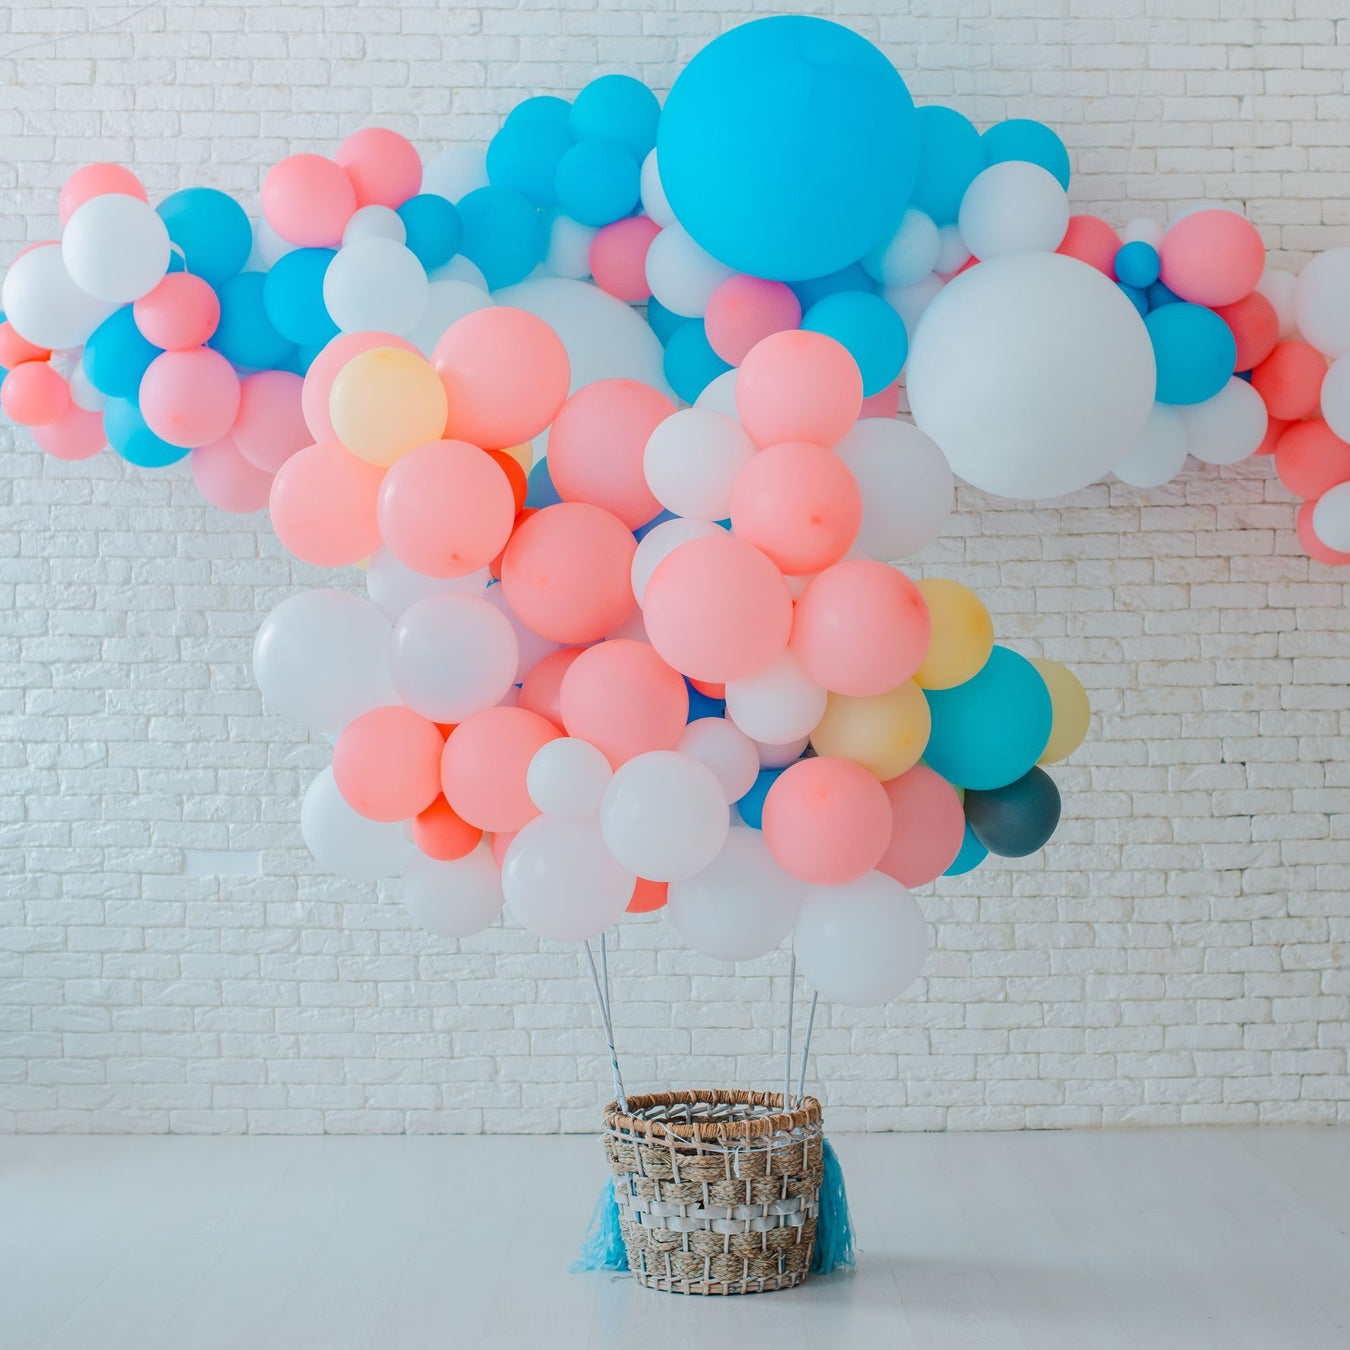 Balloon Garland | Shop Our Gorgeous DIY Balloon Garland & Arch Kits